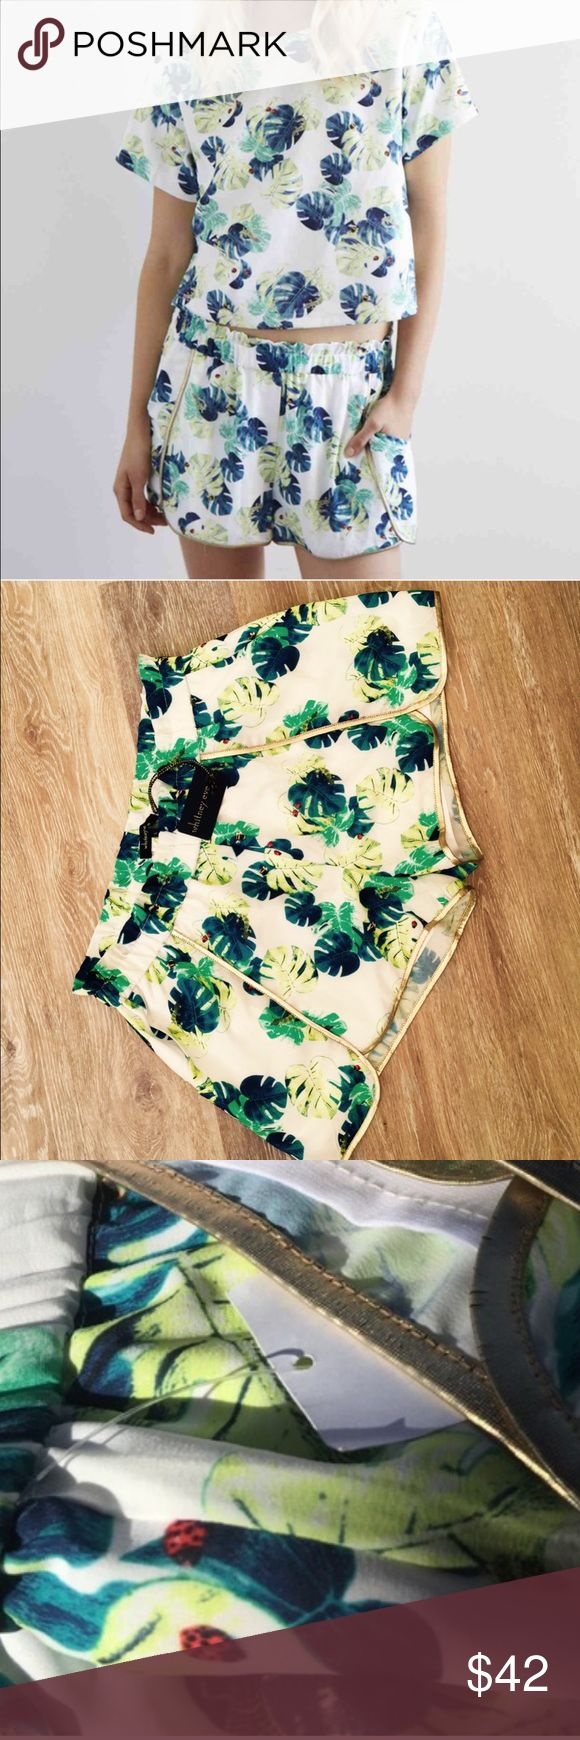 """WHITNEY EVE PALM PRINT PULL ON SHORTS Beautiful Gold Trim On These Palm Print Pull Up Shorts From Whitney Eve🔹NWT 🔹Lined🔹Pockets🔹Size Large: 30"""" Elastized Waist That StretchesTo 42"""",  8"""" rise, 11.5"""" length🔹Fabric: 100% Polyester🔹Machine Wash Cold🔹No Trades🔹Smoke Free Home🔹Thank you for stoping by💕 Whitney Eve Shorts"""